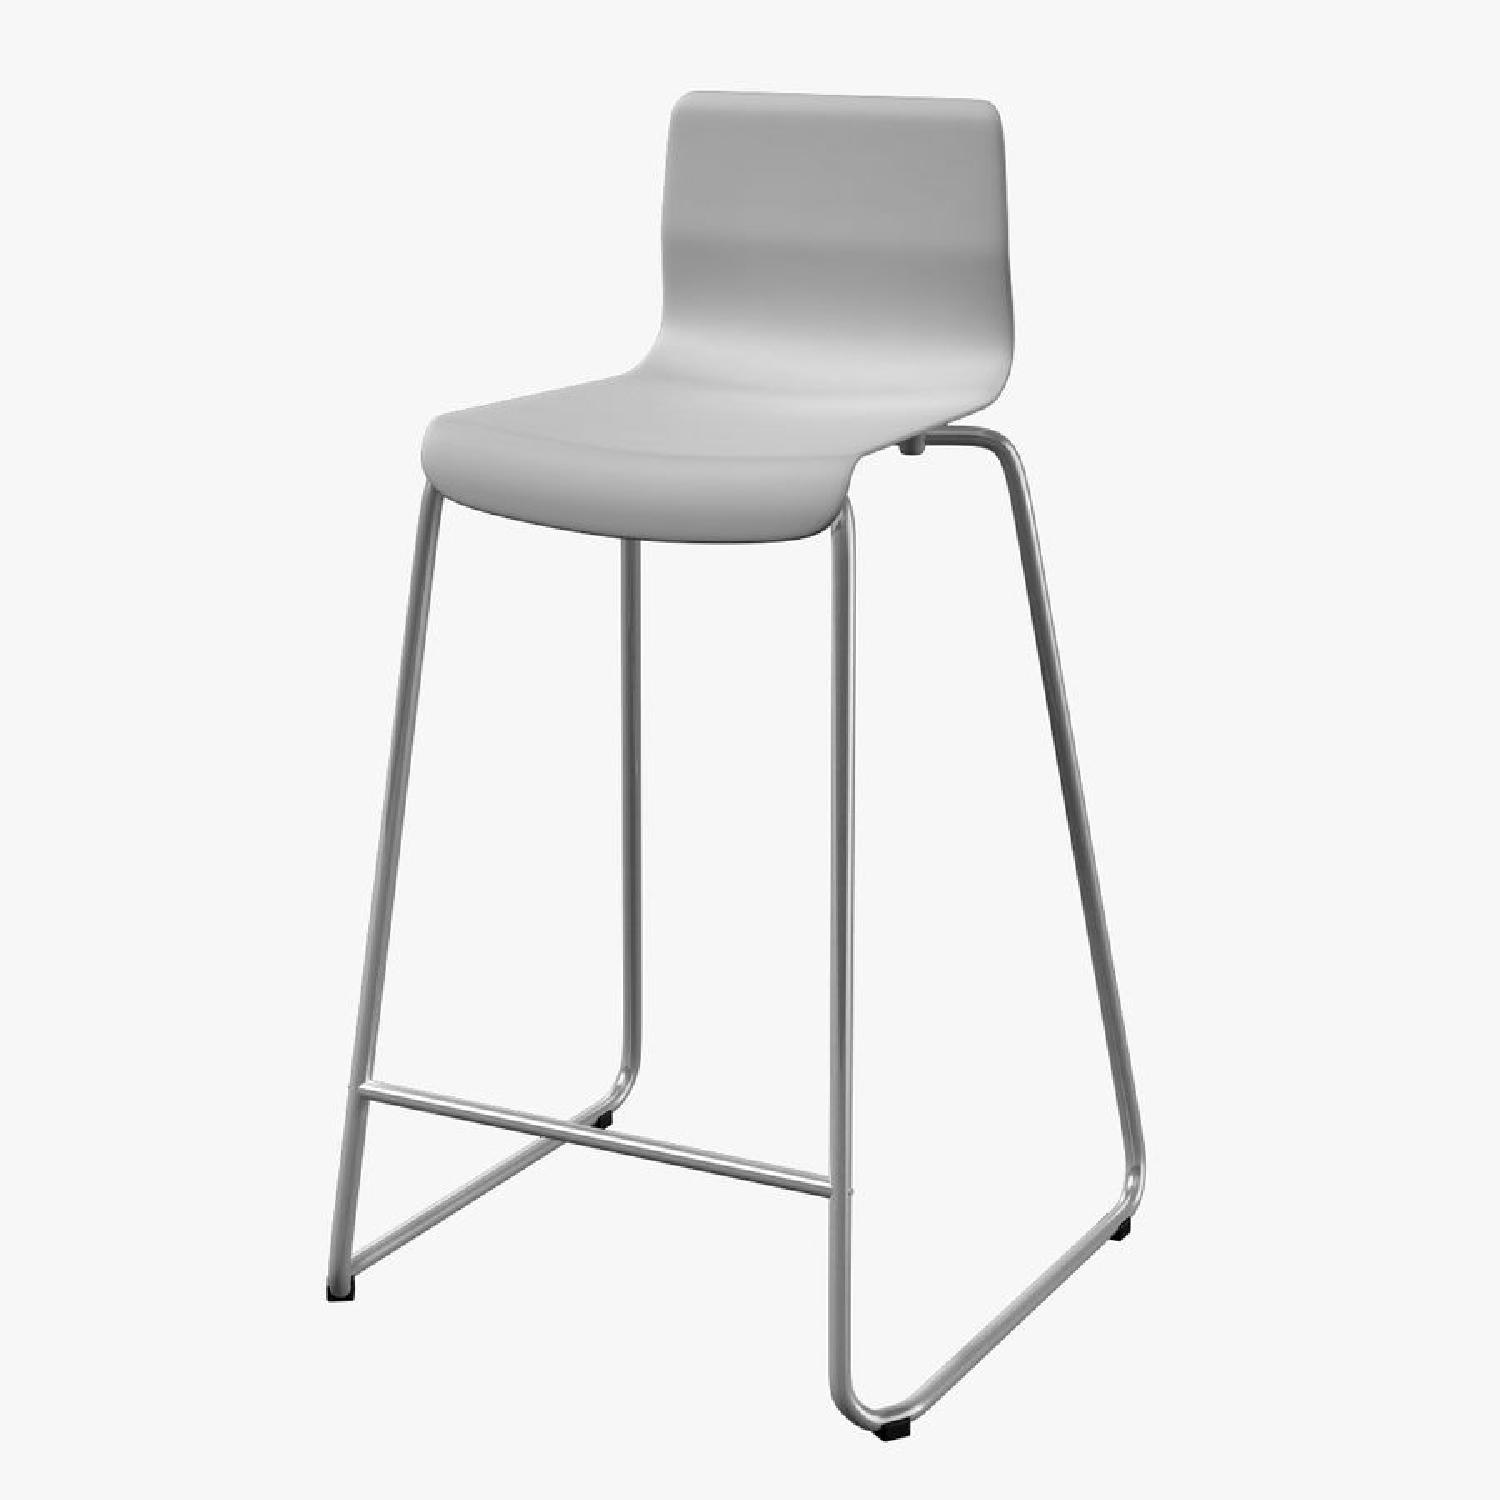 Ikea Glenn White Bar Stools